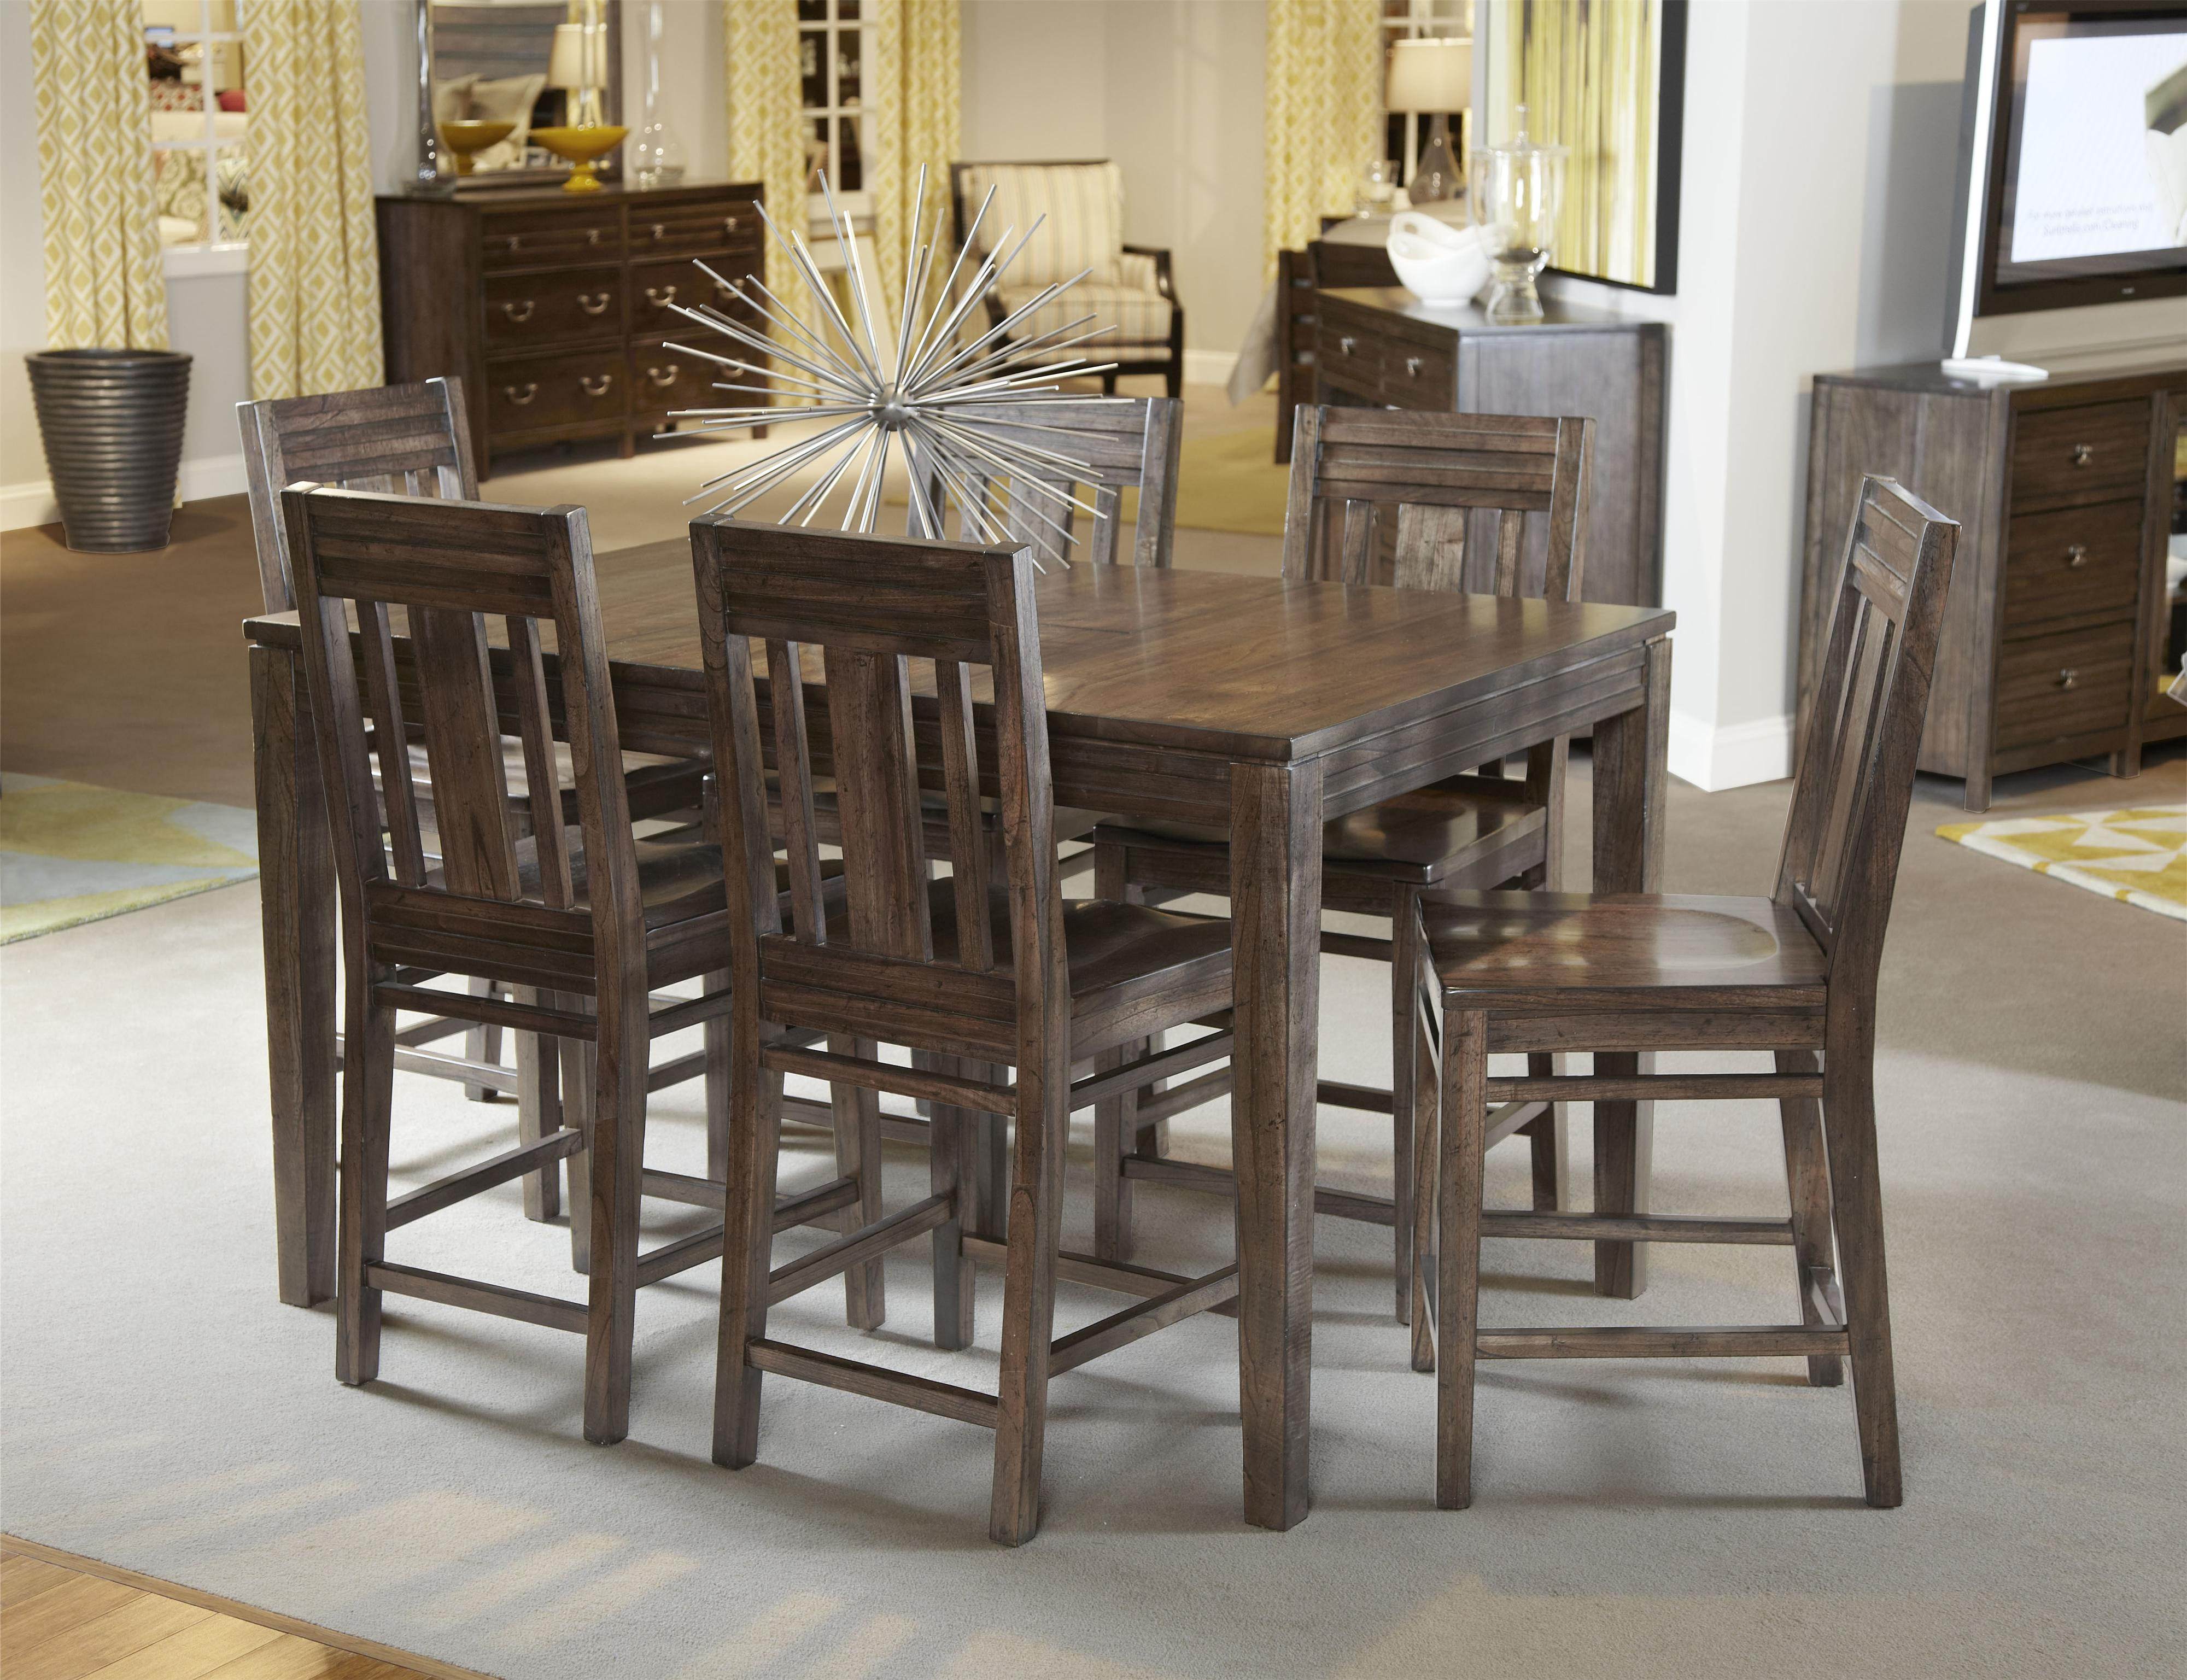 Counter Height Dining Tables: Kincaid Furniture Montreat Seven Piece Casual Counter